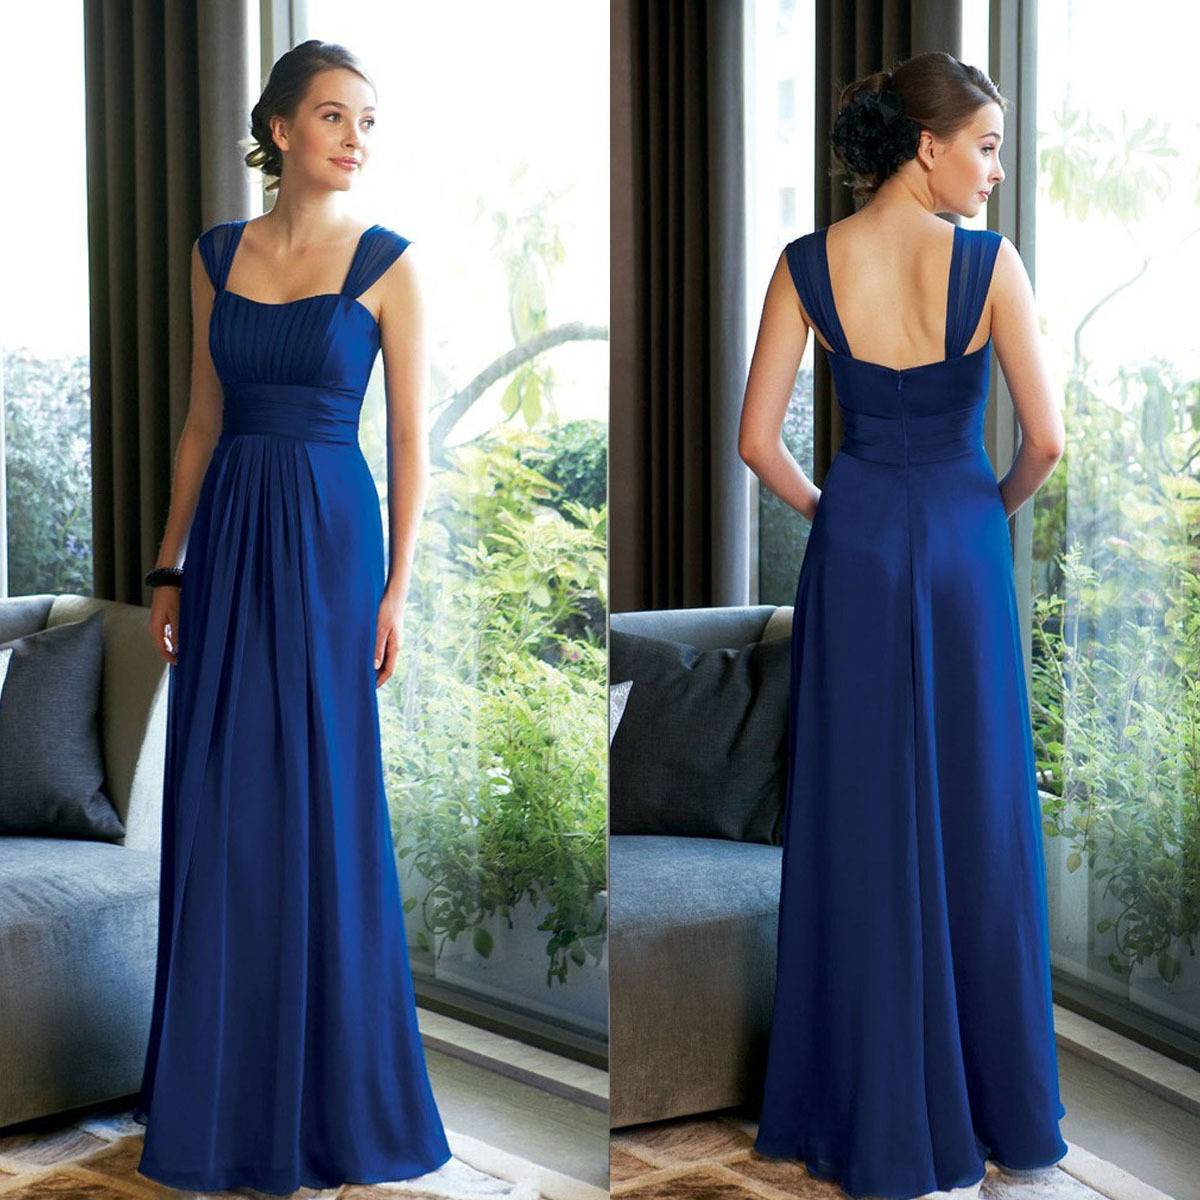 Royal blue bridesmaid dresses under 50 dollars – The best wedding ...